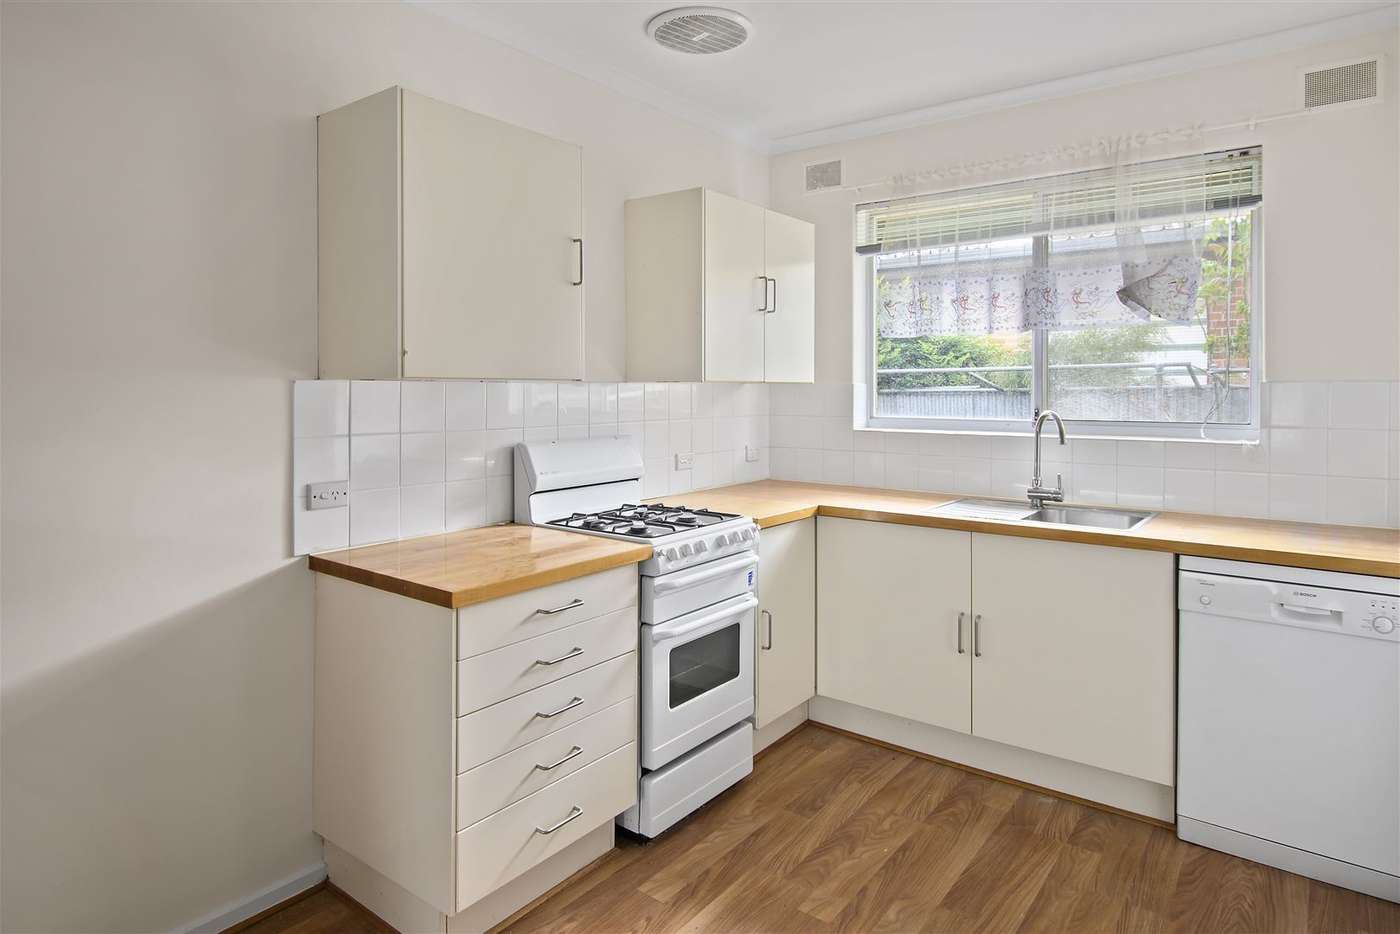 Fifth view of Homely unit listing, 3/29 Seaview Road, Fullarton SA 5063